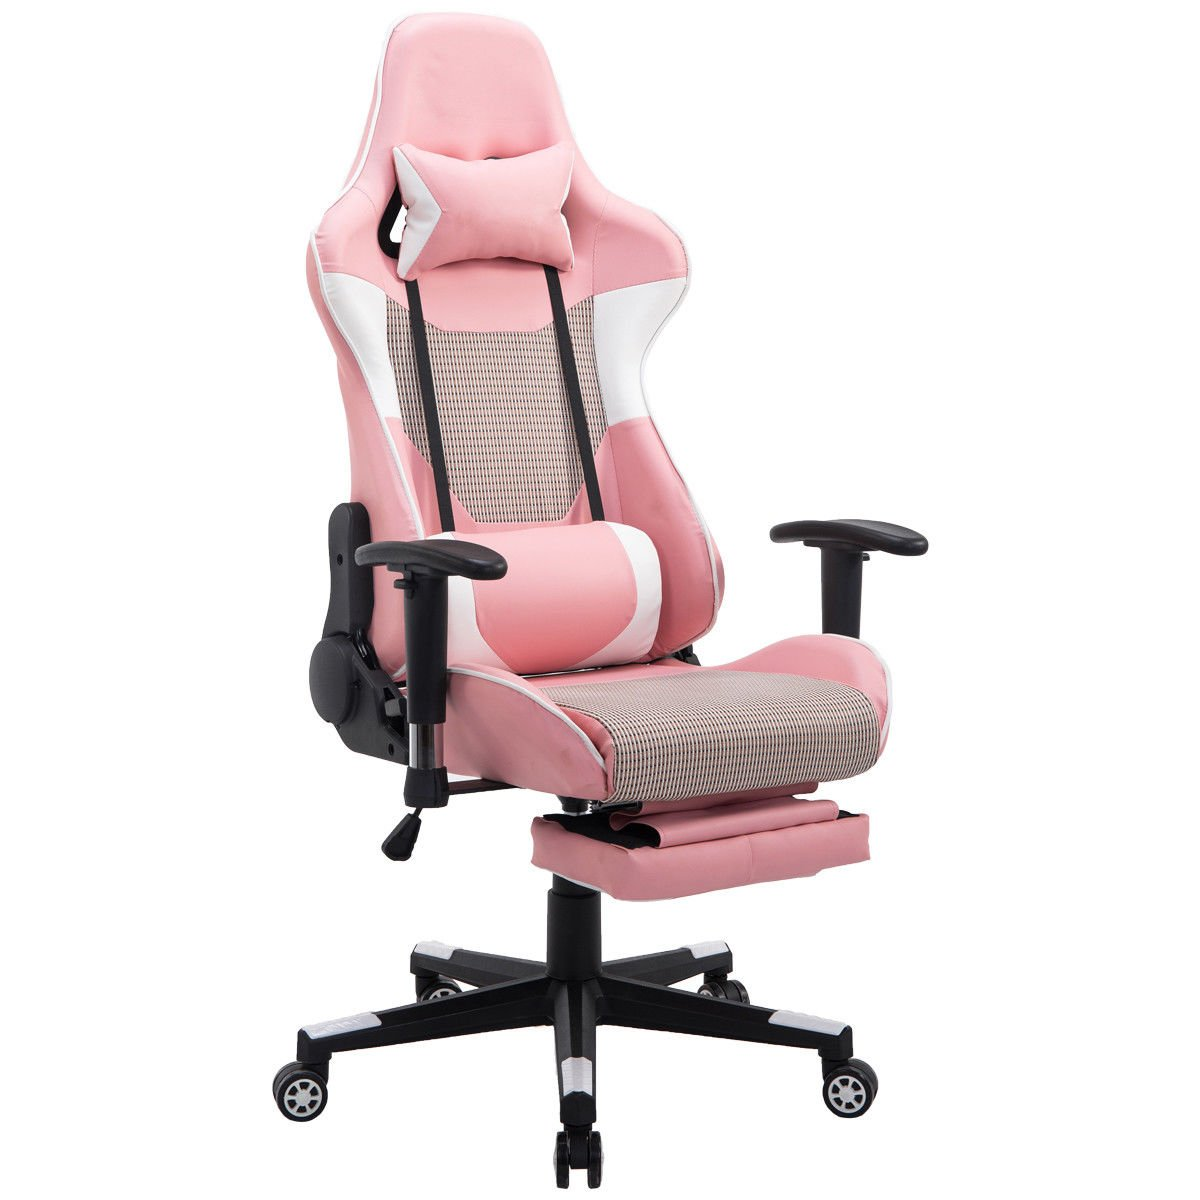 Giantex Gaming Chair Racing Chair Mesh High Back Reclining Lumbar Support, Headrest and Footrest Office Swivel Computer Task Desk Gaming Chair (Pink)